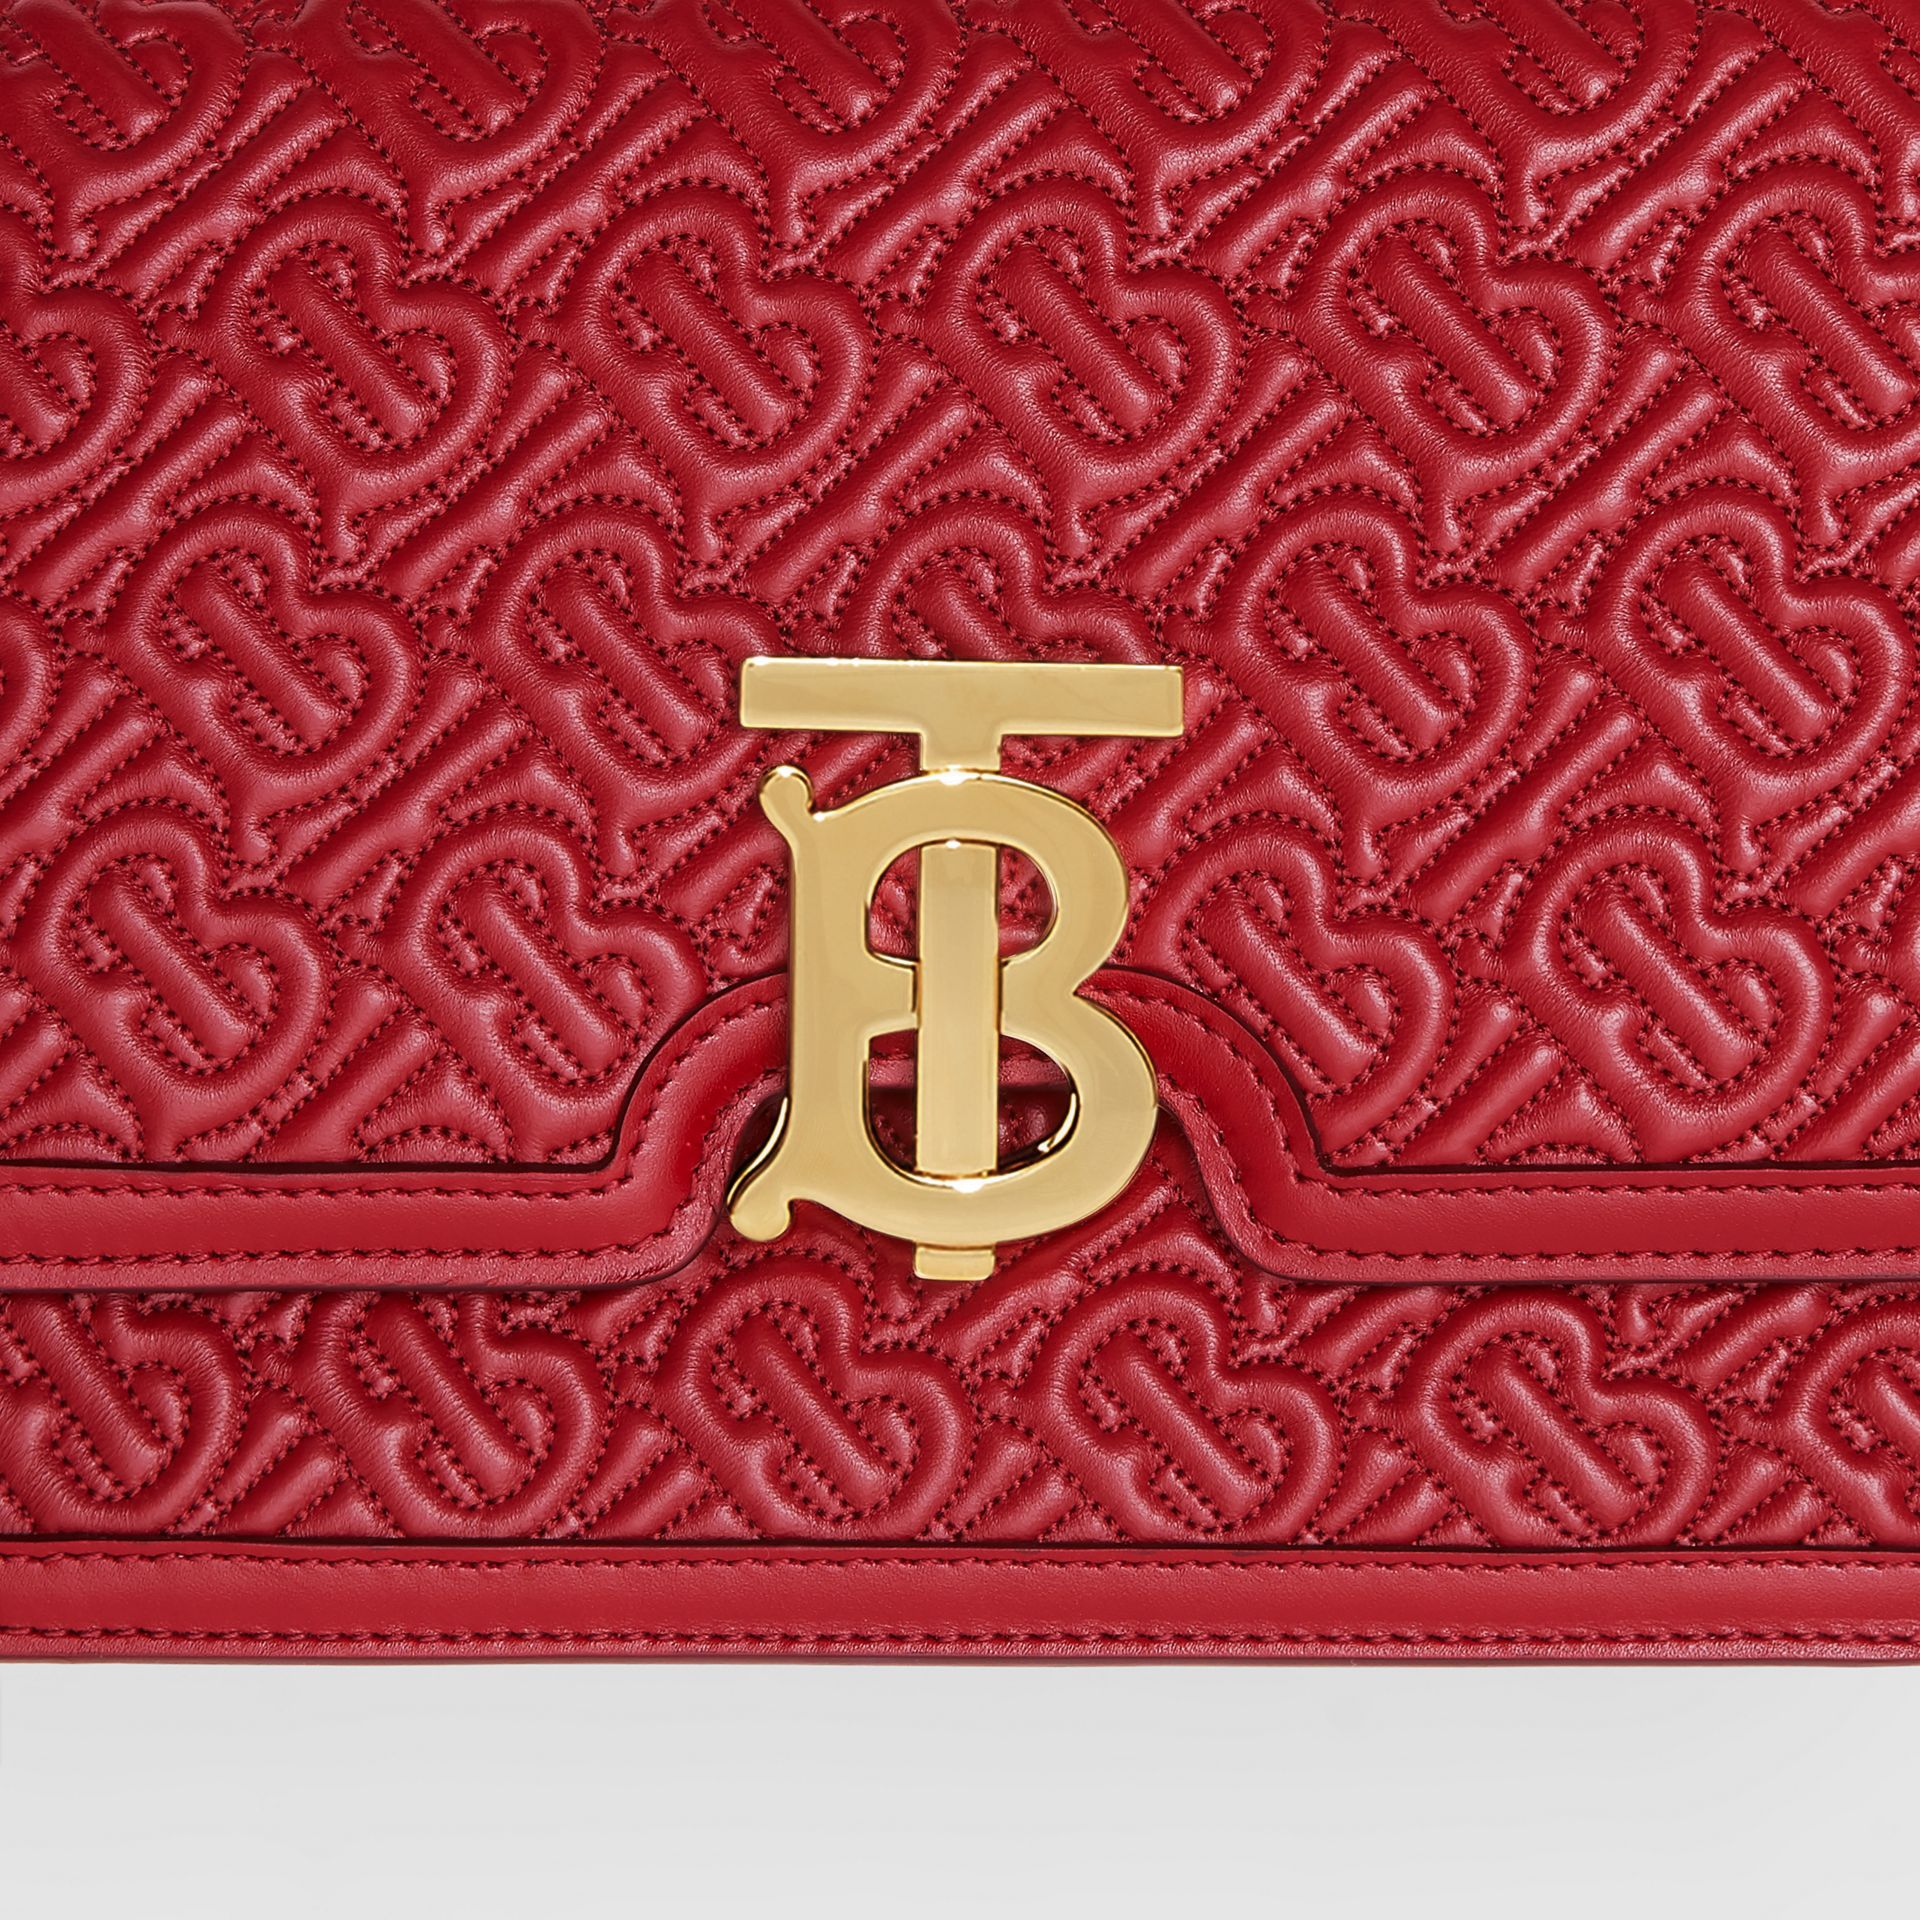 Small Quilted Monogram Lambskin TB Bag in Dark Carmine - Women | Burberry Hong Kong S.A.R. - gallery image 1